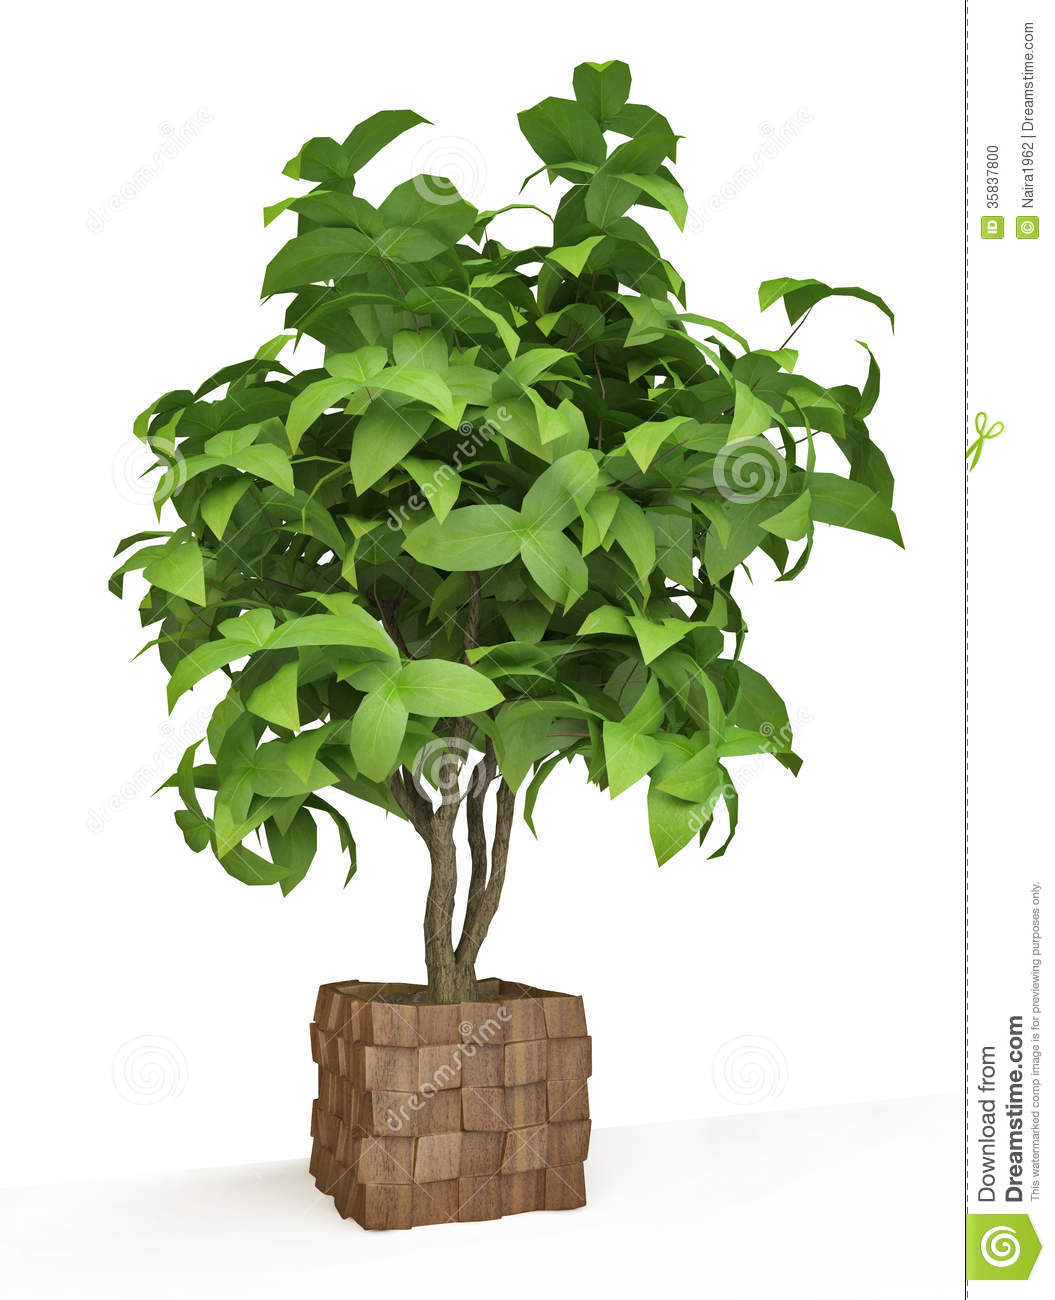 Arbre d coratif de plante d 39 int rieur photo stock image for Arbres artificiels interieur